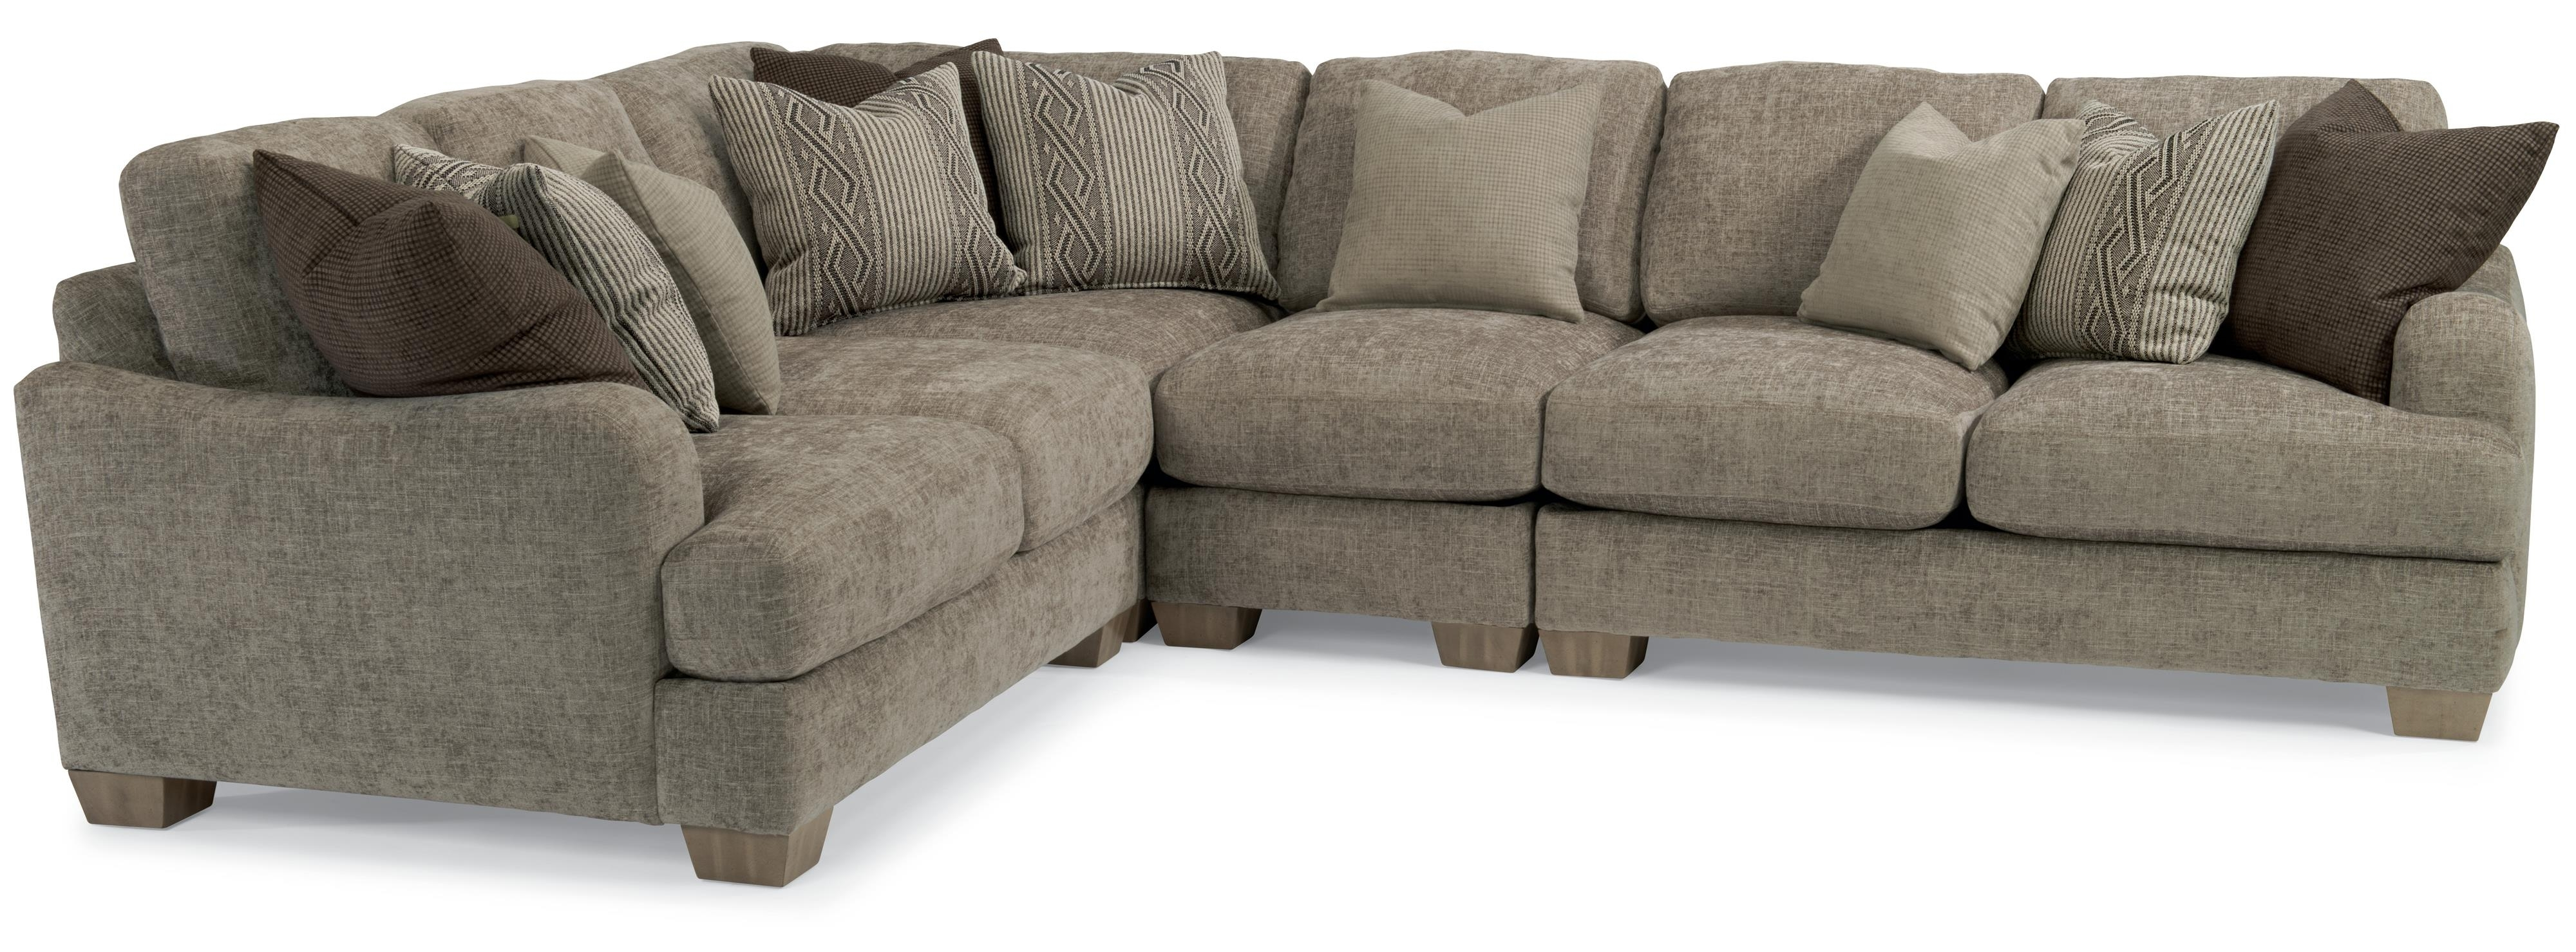 Vanessa Sectional Sofa With Loose Pillow Backflexsteel | Living Throughout Nova Scotia Sectional Sofas (View 2 of 10)